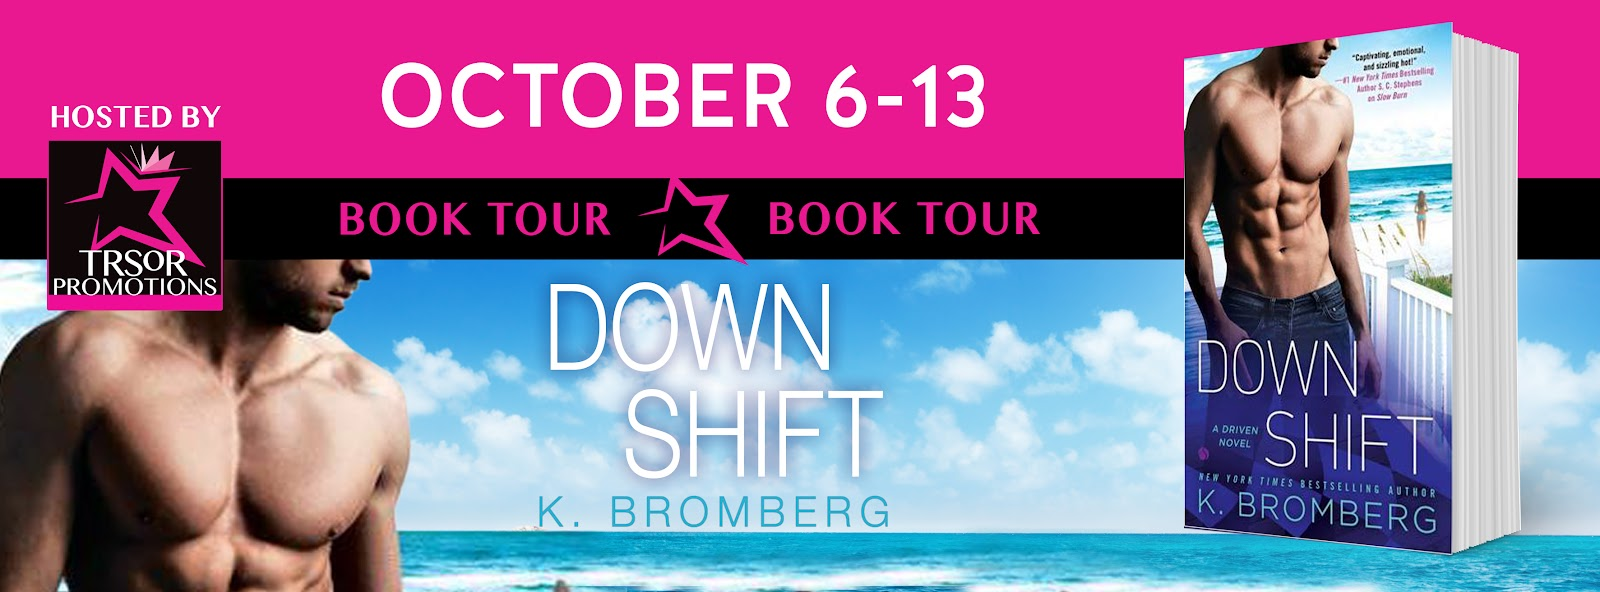 DOWN_SHIFT_BOOK_TOUR.jpg